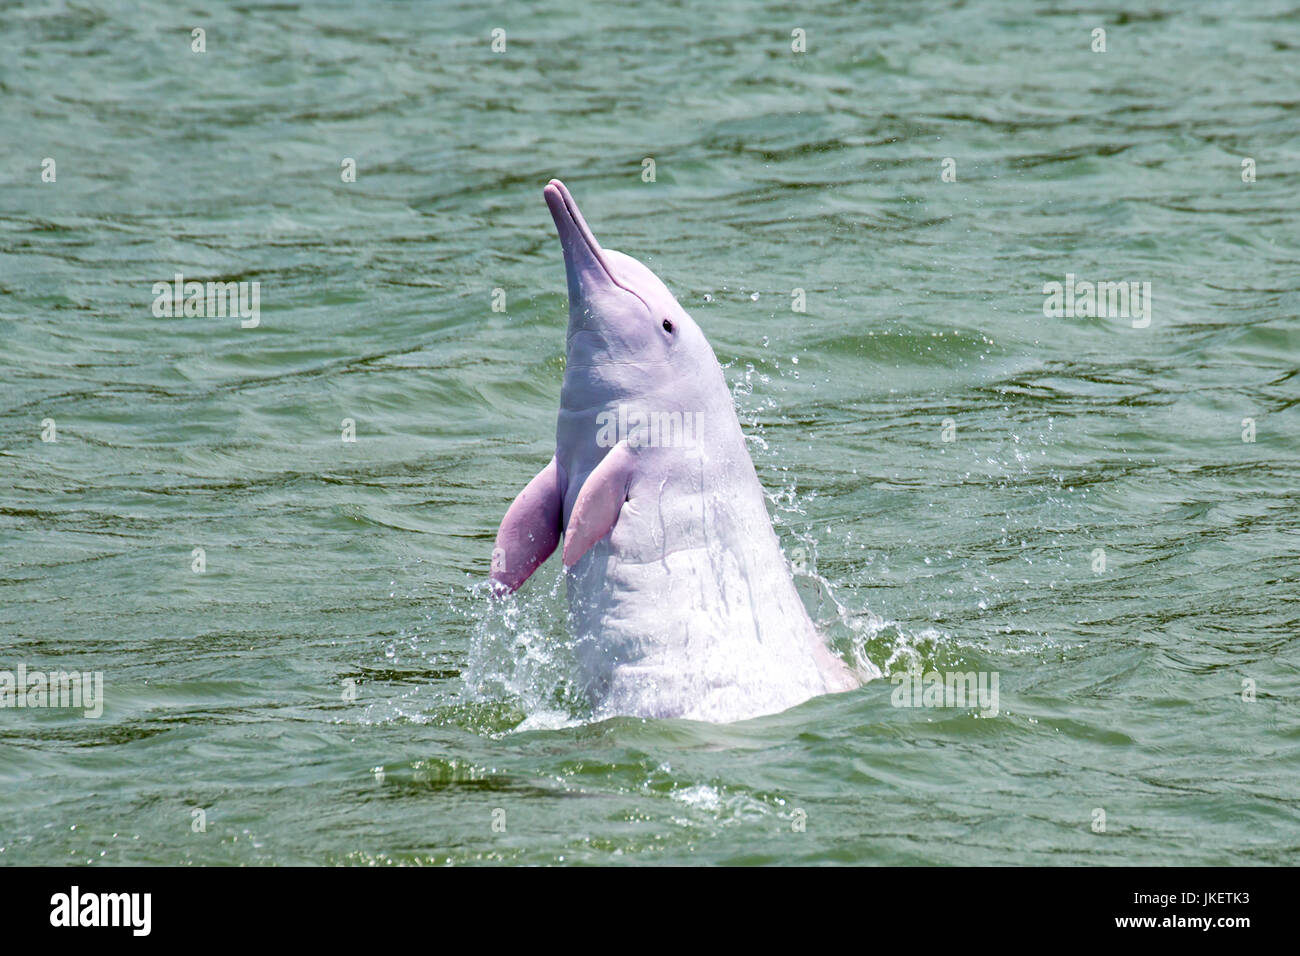 An adult Indo-Pacific Humpback Dolphin (Sousa chinensis) leaping straight out from the water, spyhopping. - Stock Image